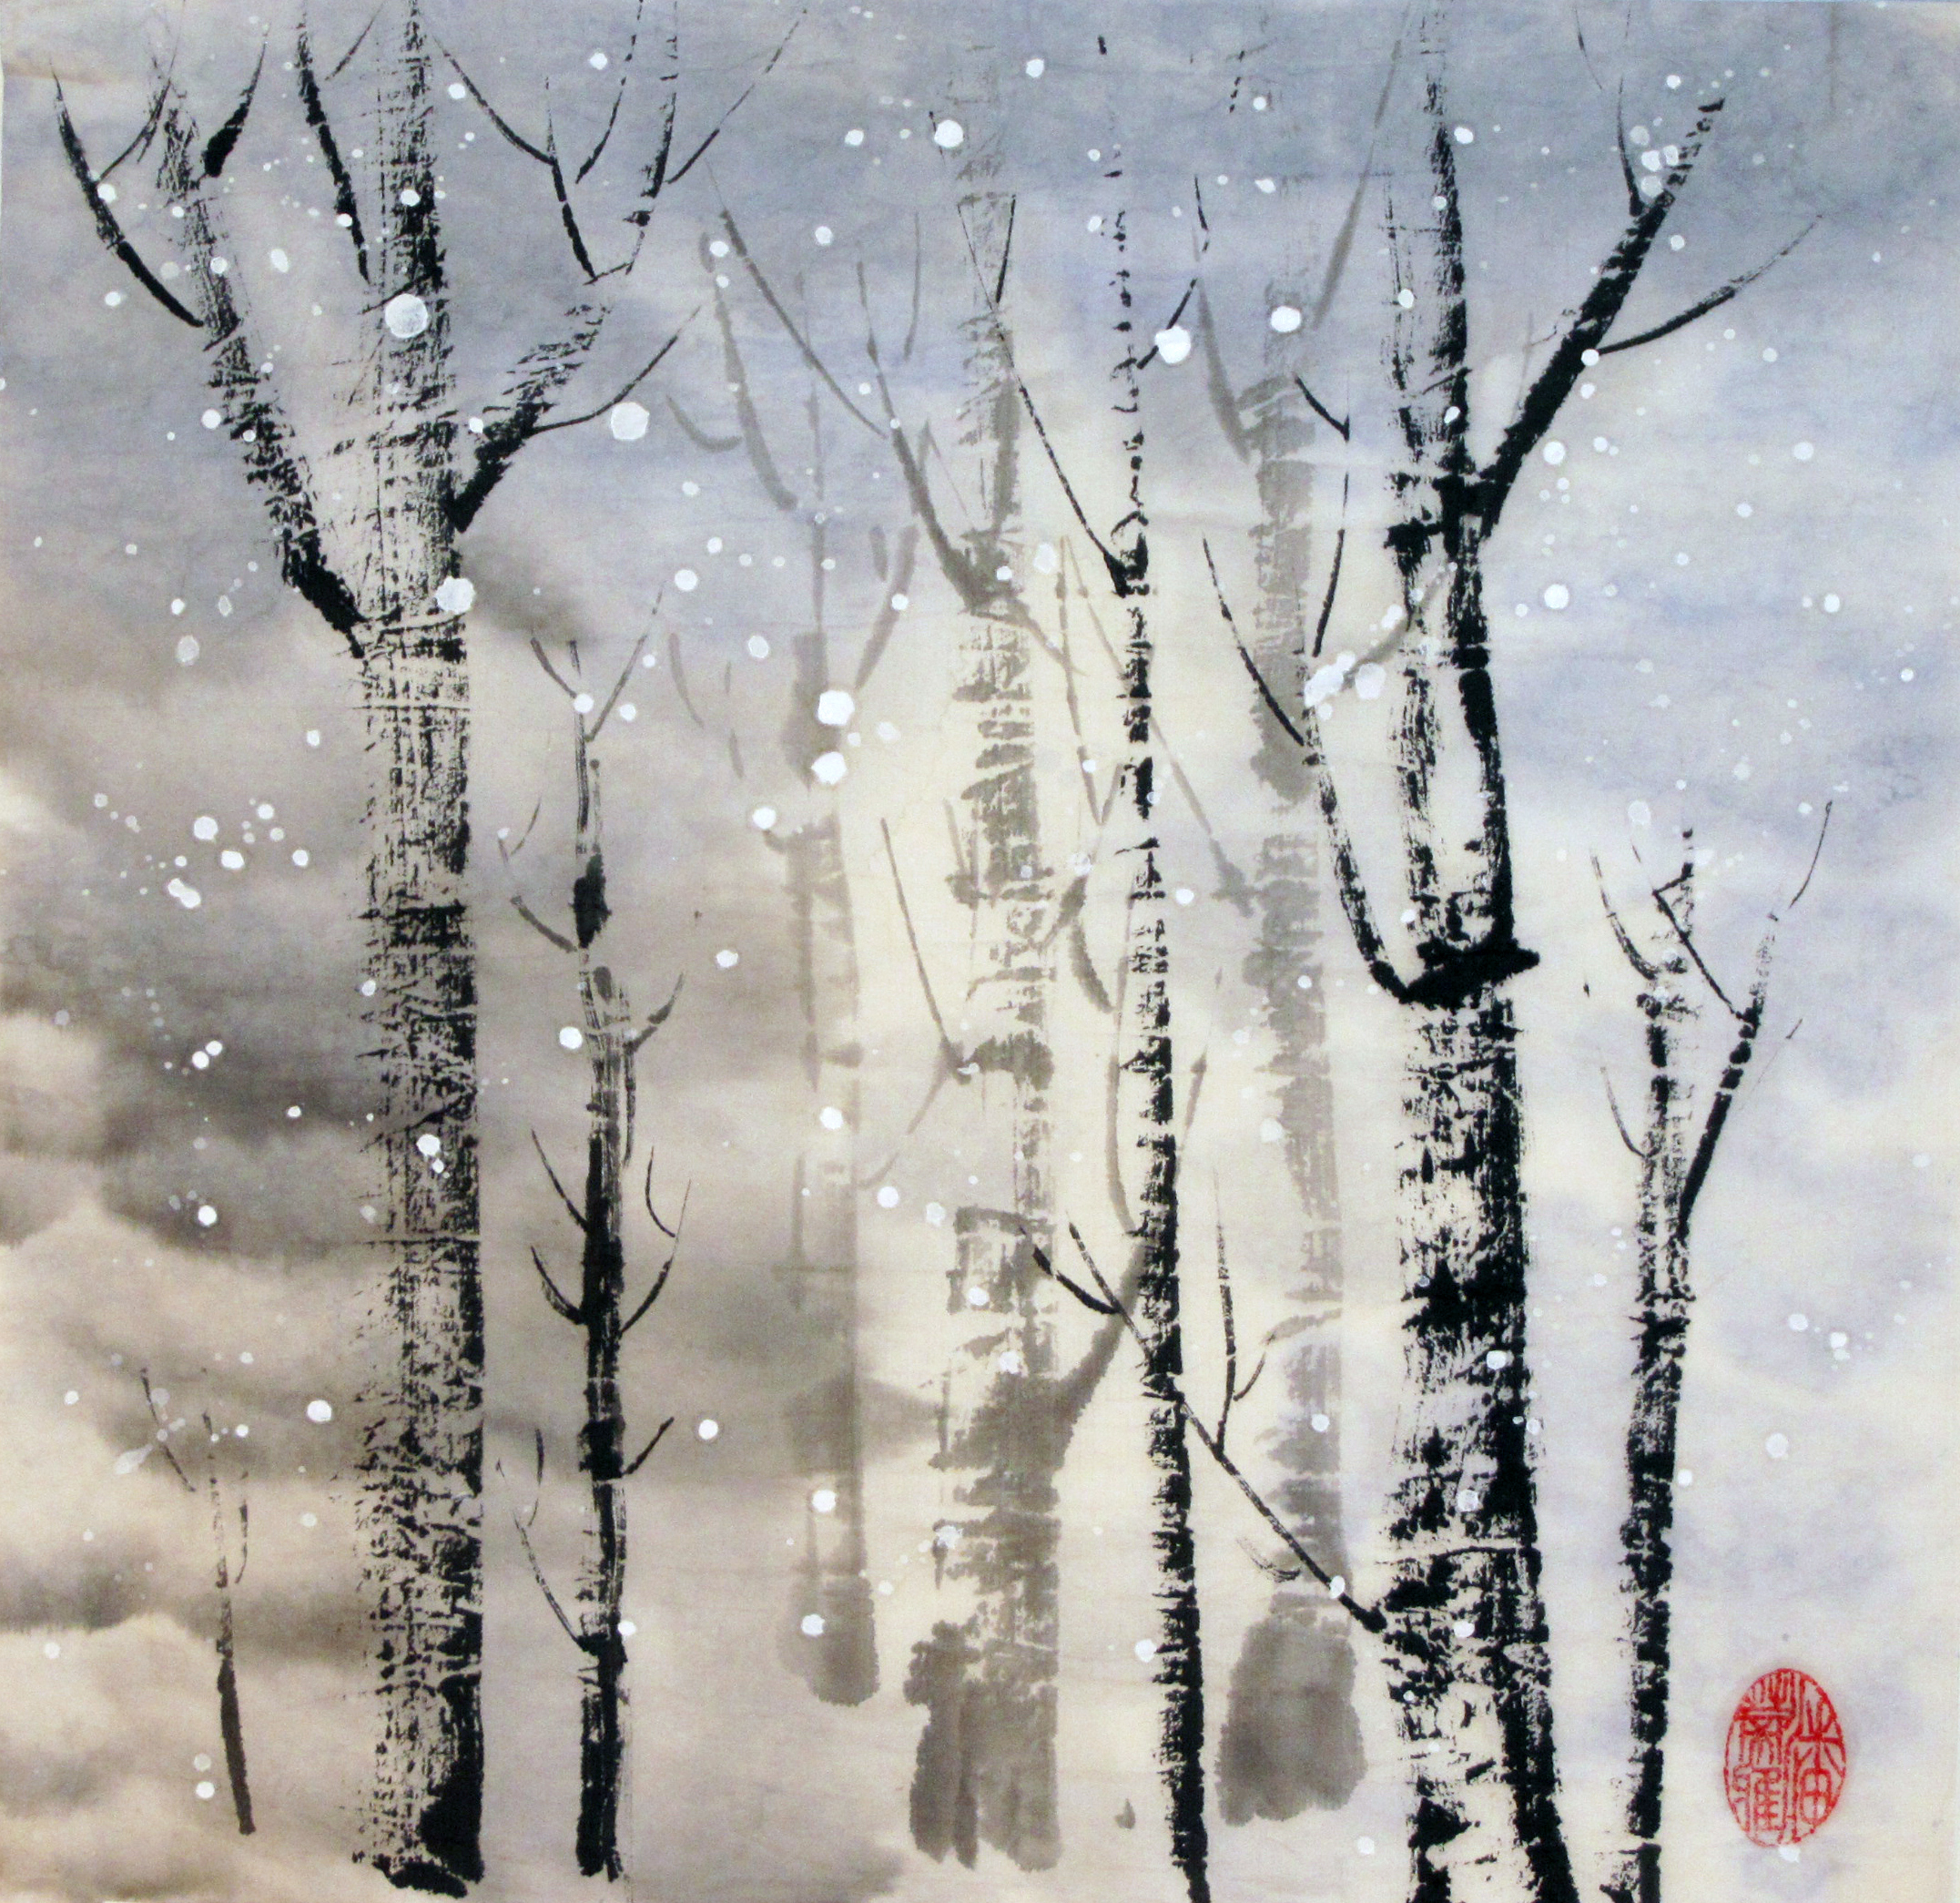 Snow Whispers Among the Birches